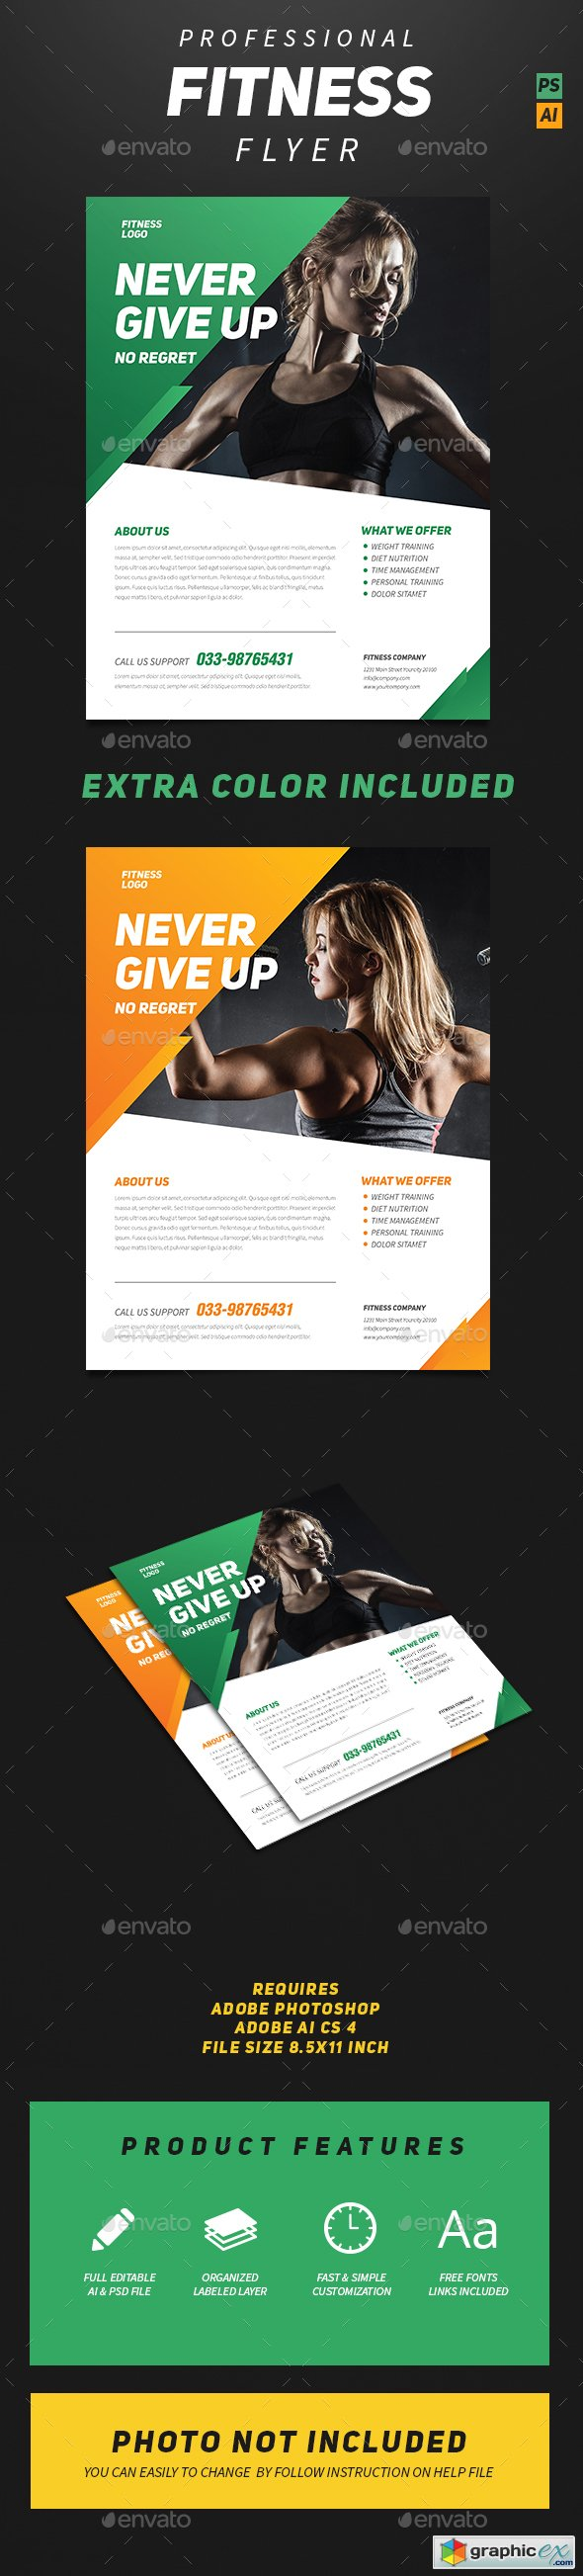 Professional Fitness Flyer 14059698